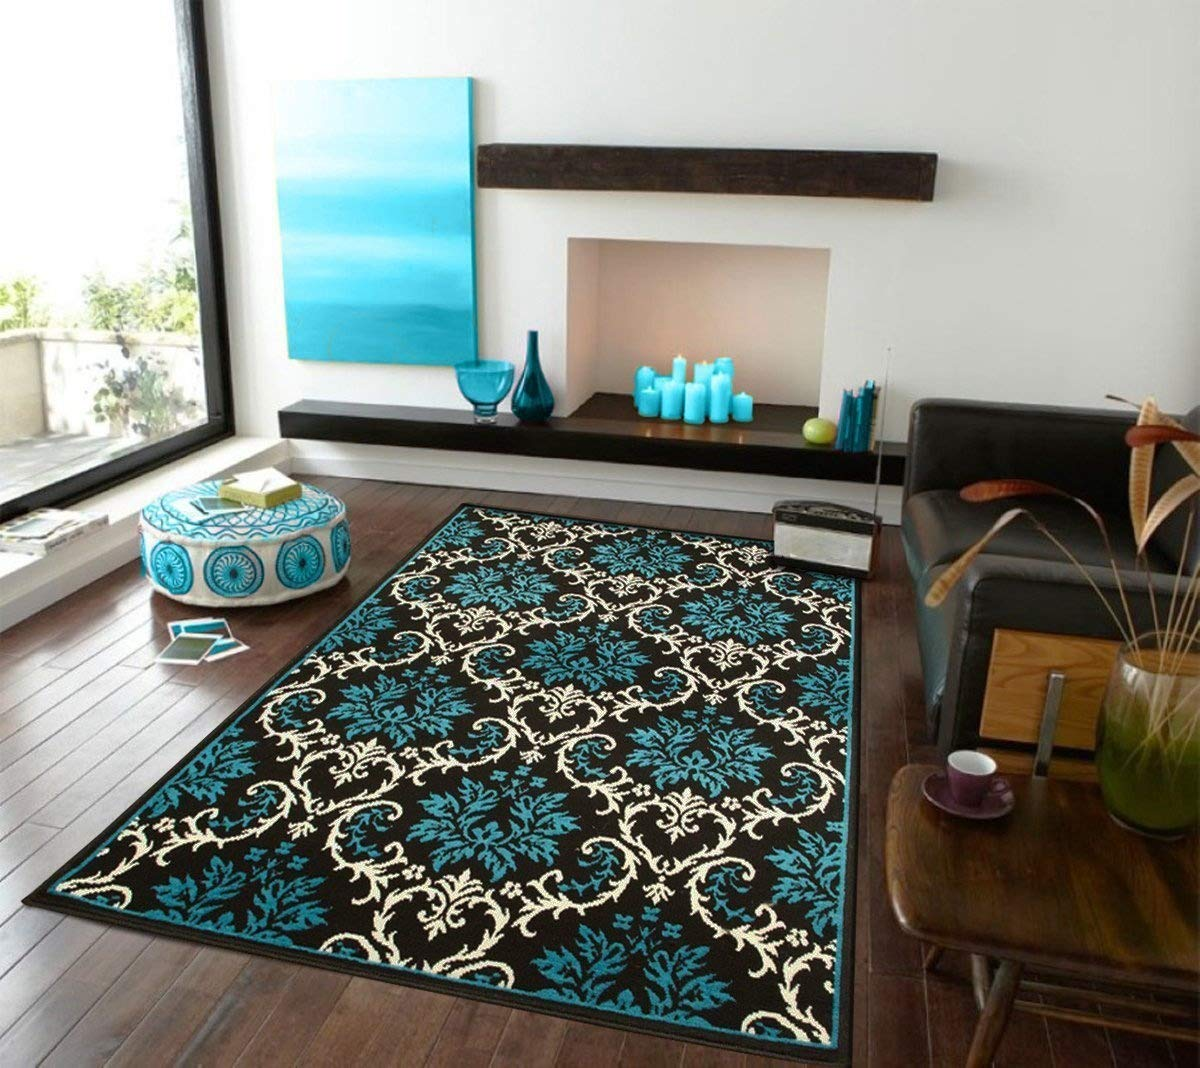 Amazon.com: Luxury Small Rugs For Bedroom Blue Area Rugs Entrance ...